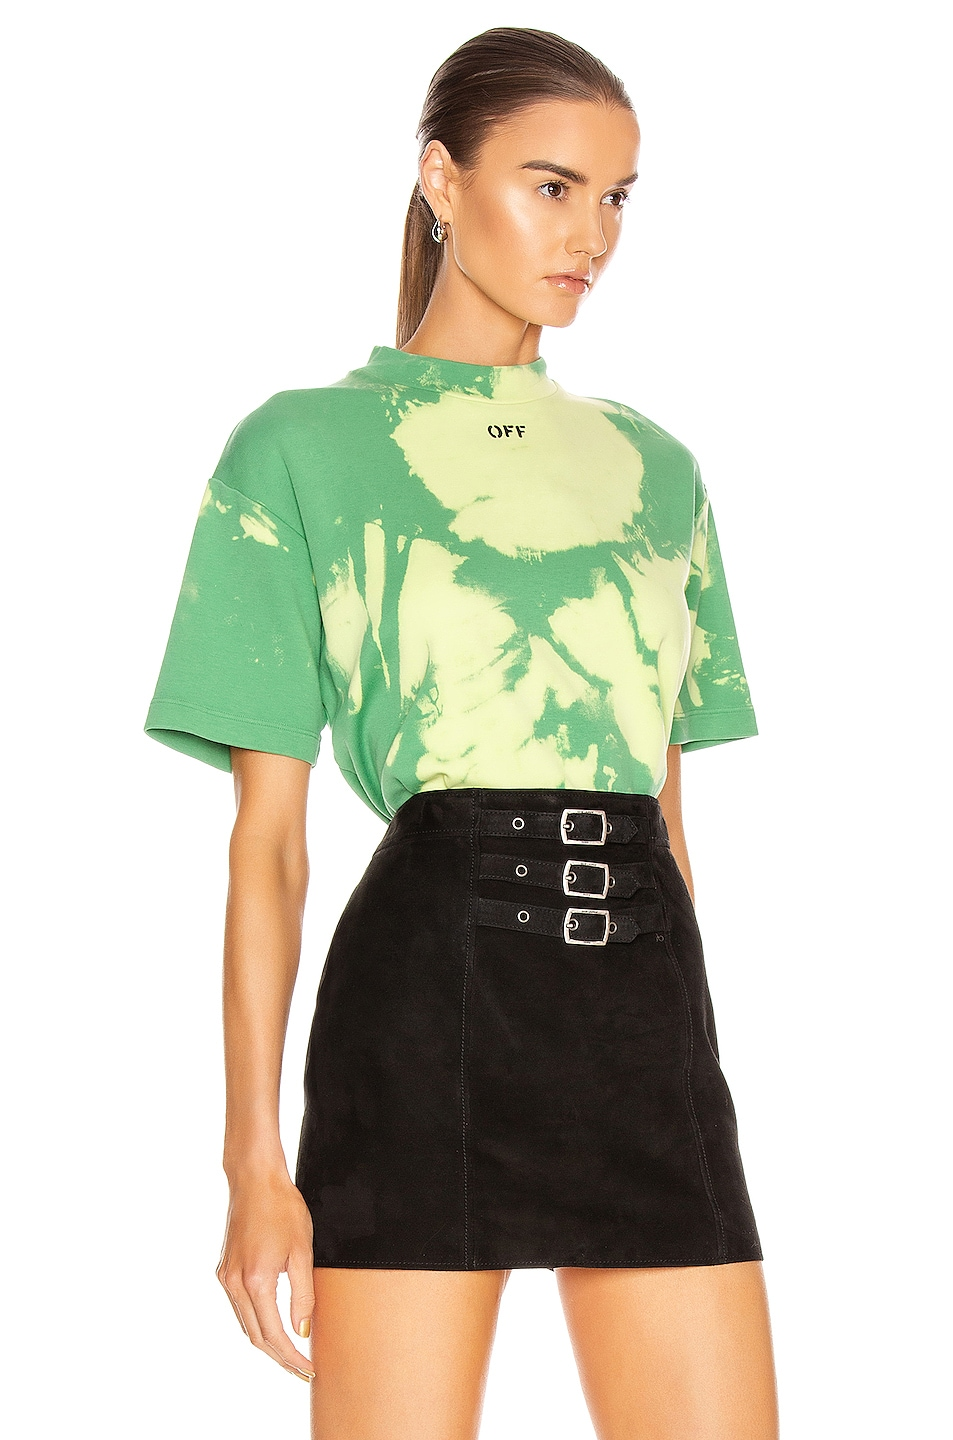 Image 3 of OFF-WHITE Tie Dye Jersey Over T Shirt in Light Green